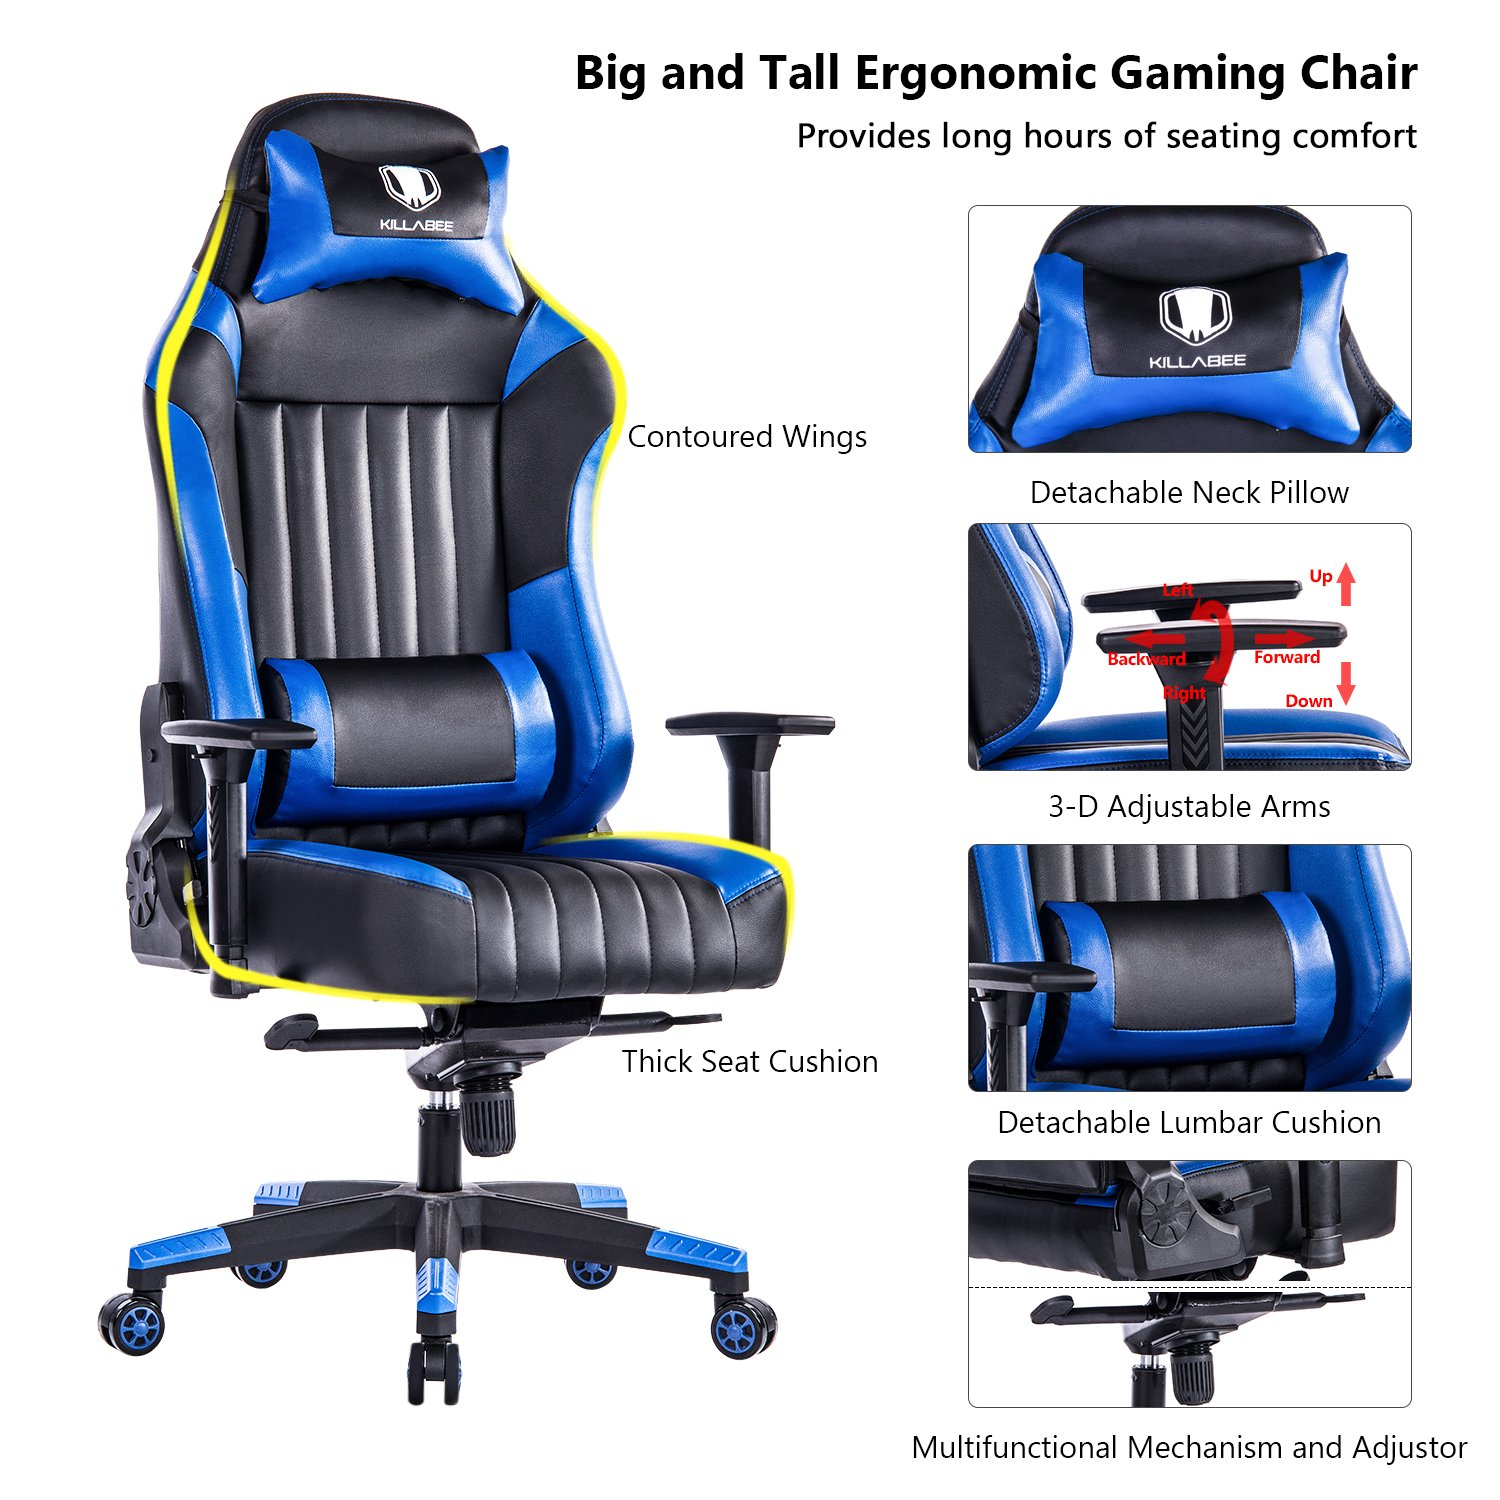 KILLABEE Big and Tall 440lb Gaming Chair - Adjustable Tilt, Back Angle and 3D Arms Ergonomic High-Back Racing Leather Executive Computer Desk Office Chair Detachable Headrest and Lumbar Support, Blue